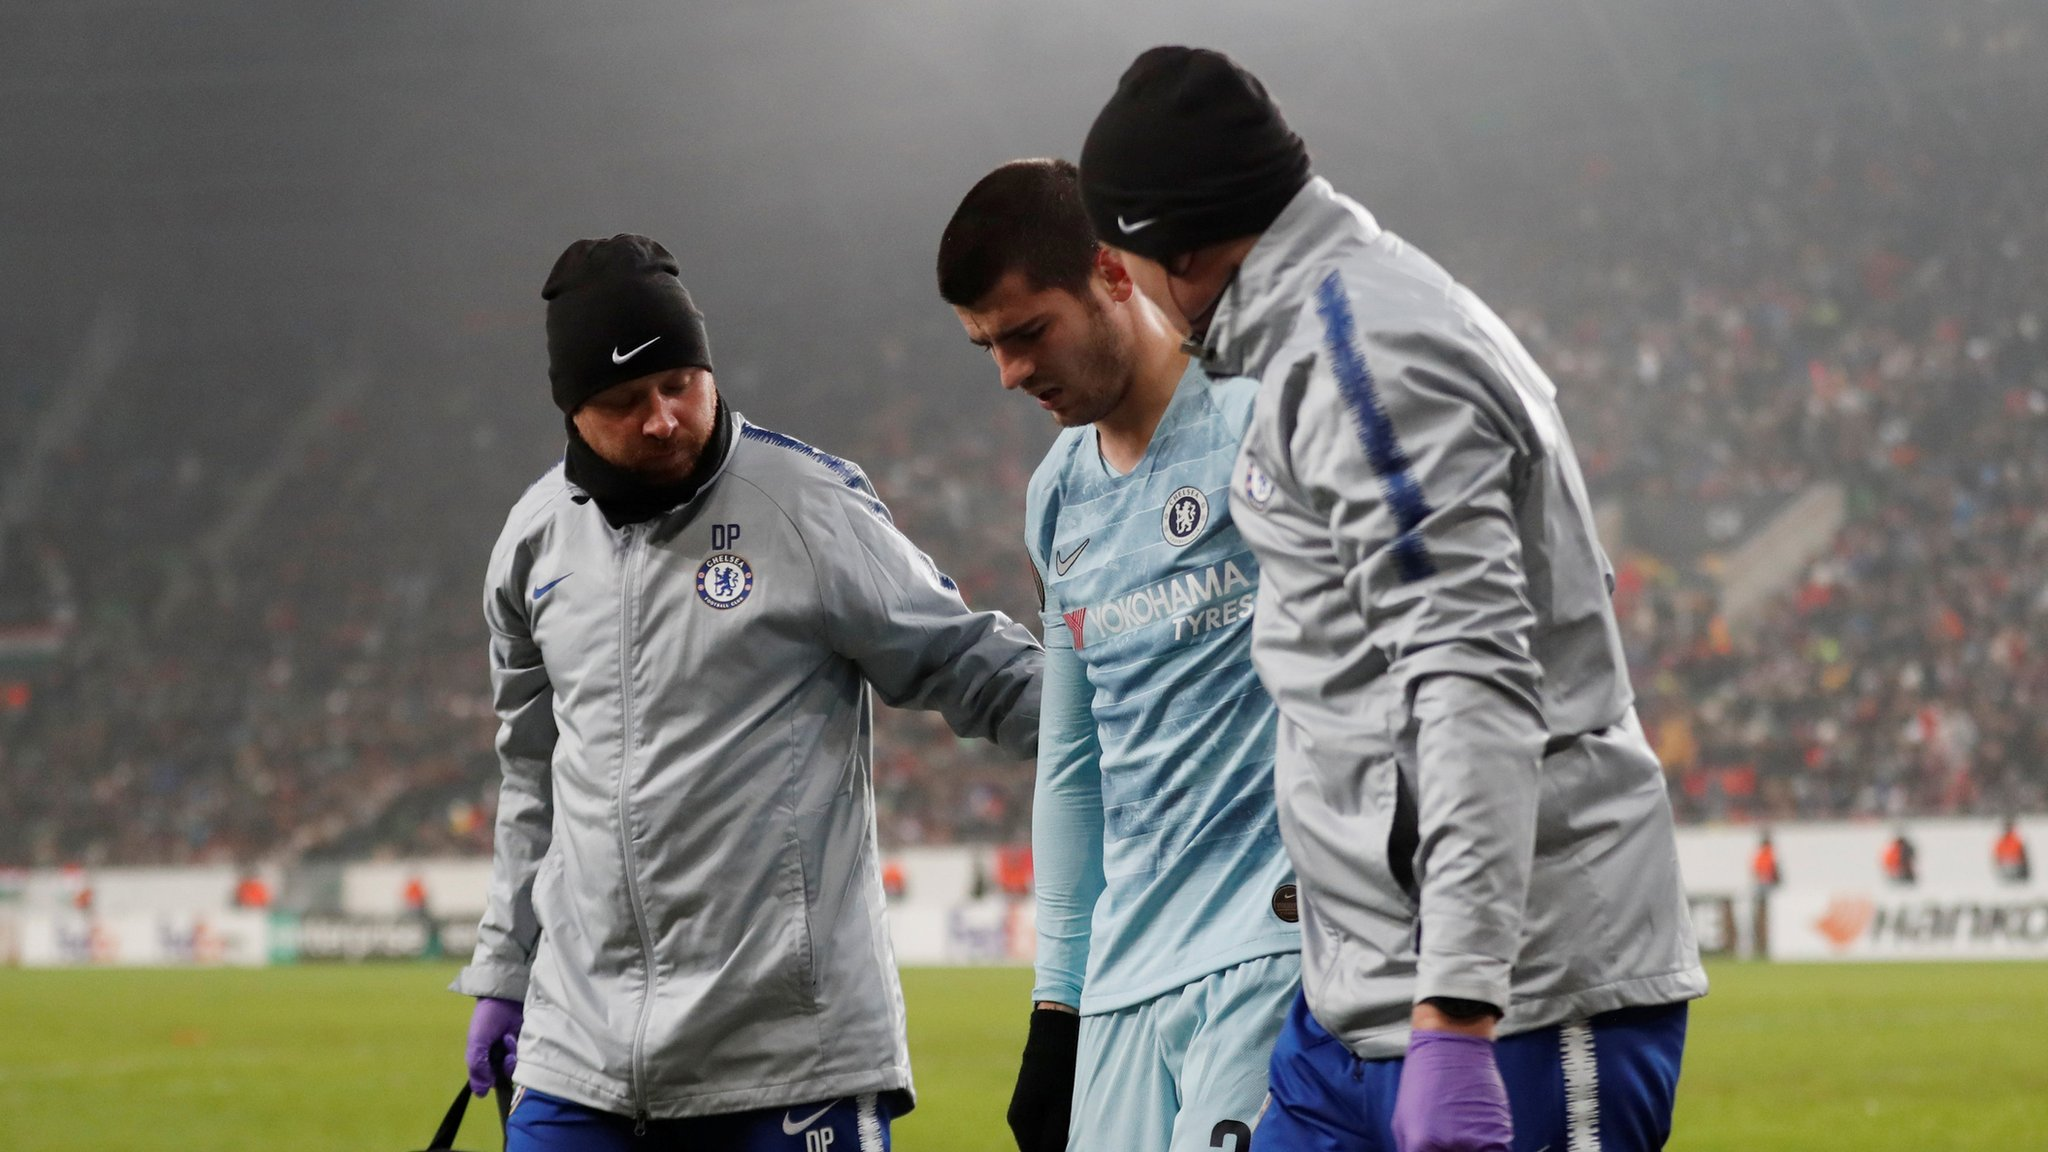 Chelsea draw 2-2 with MOL Vidi as Alvaro Morata injured